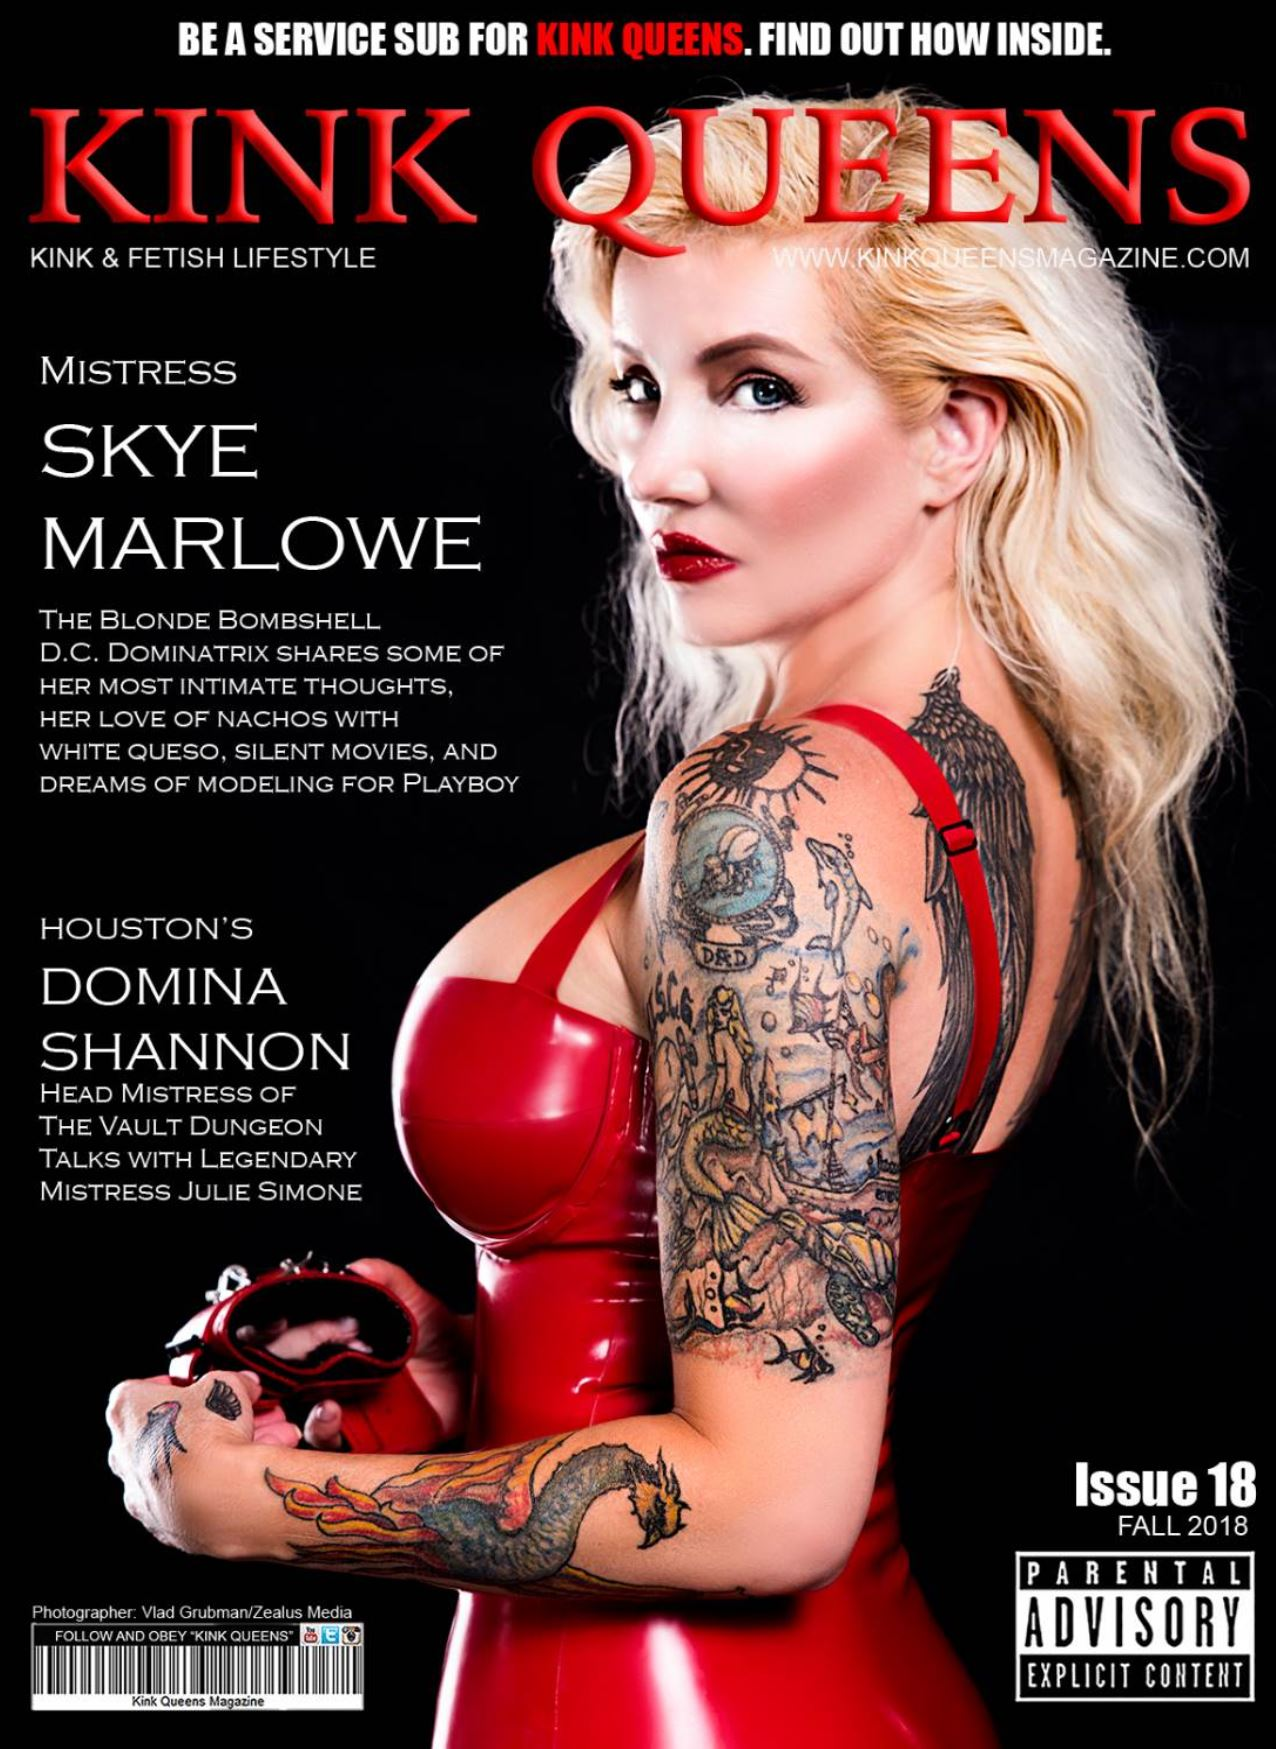 Publication in Kink Queens magazine - Cover / Photography by Vlad Grubman, Zealusmedia.com